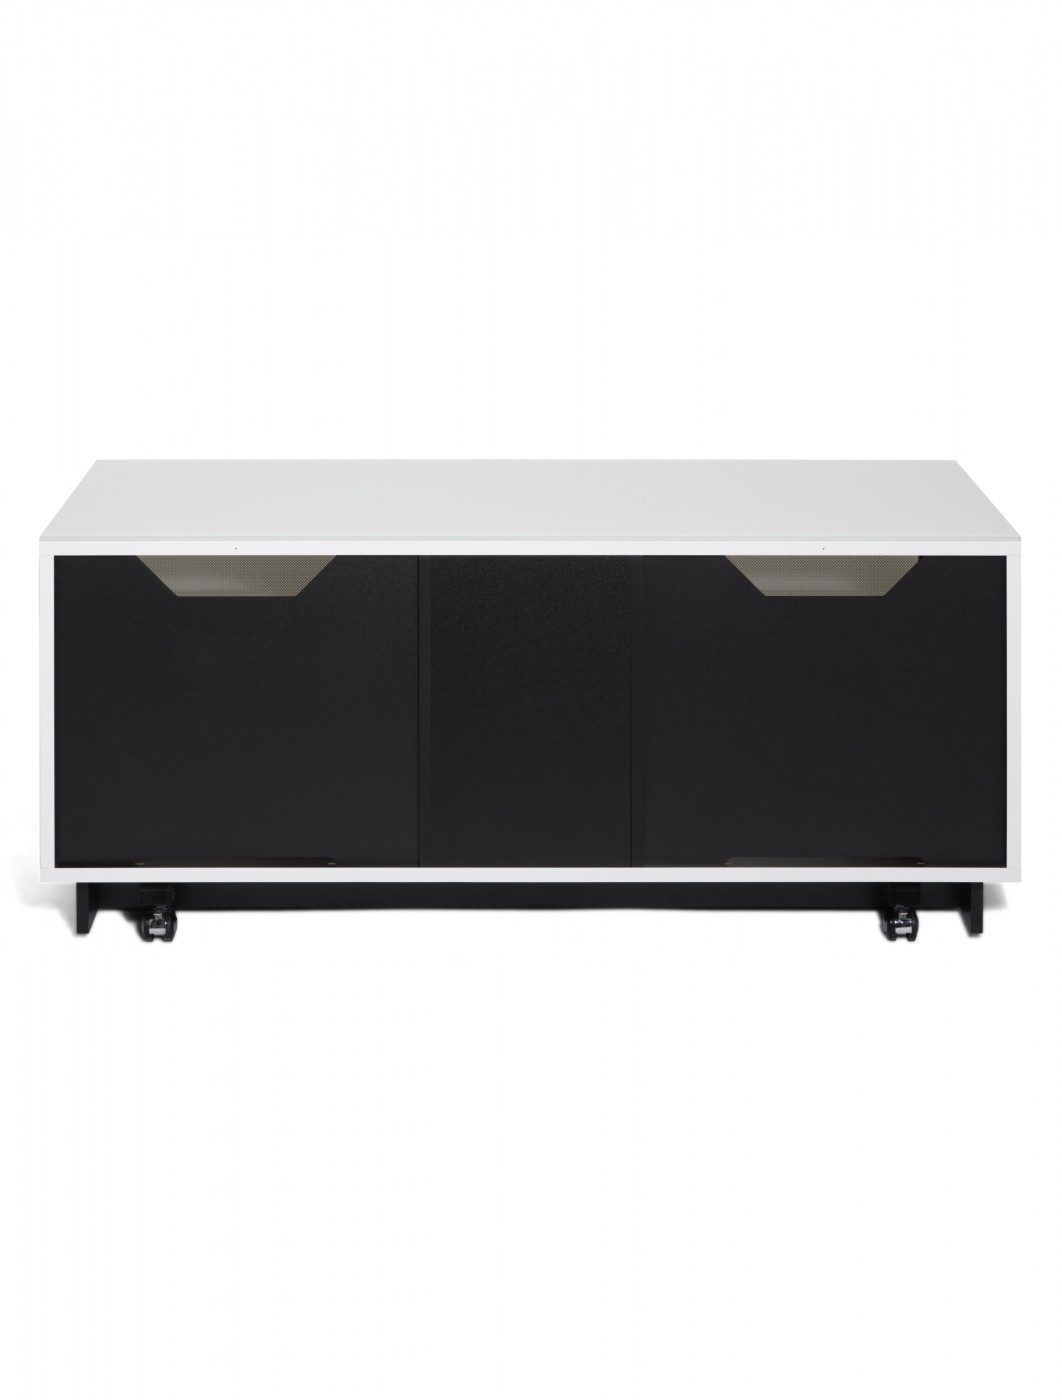 Alphason Element Modular 1250XL TV Stand EMTMOD1250XL-WHI